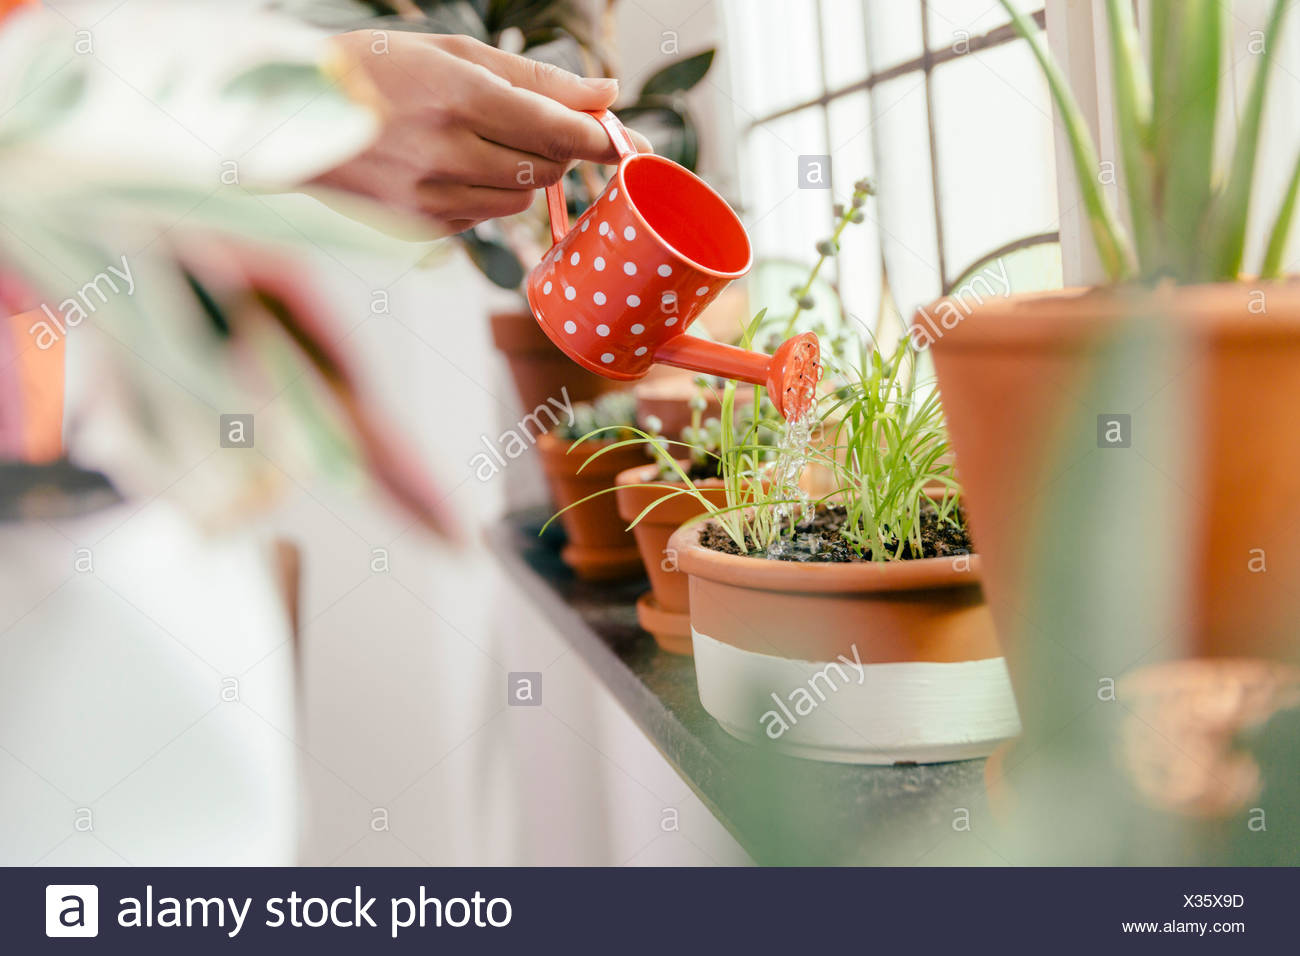 Female hand watering plant on window sill with a tiny watering can - Stock Image